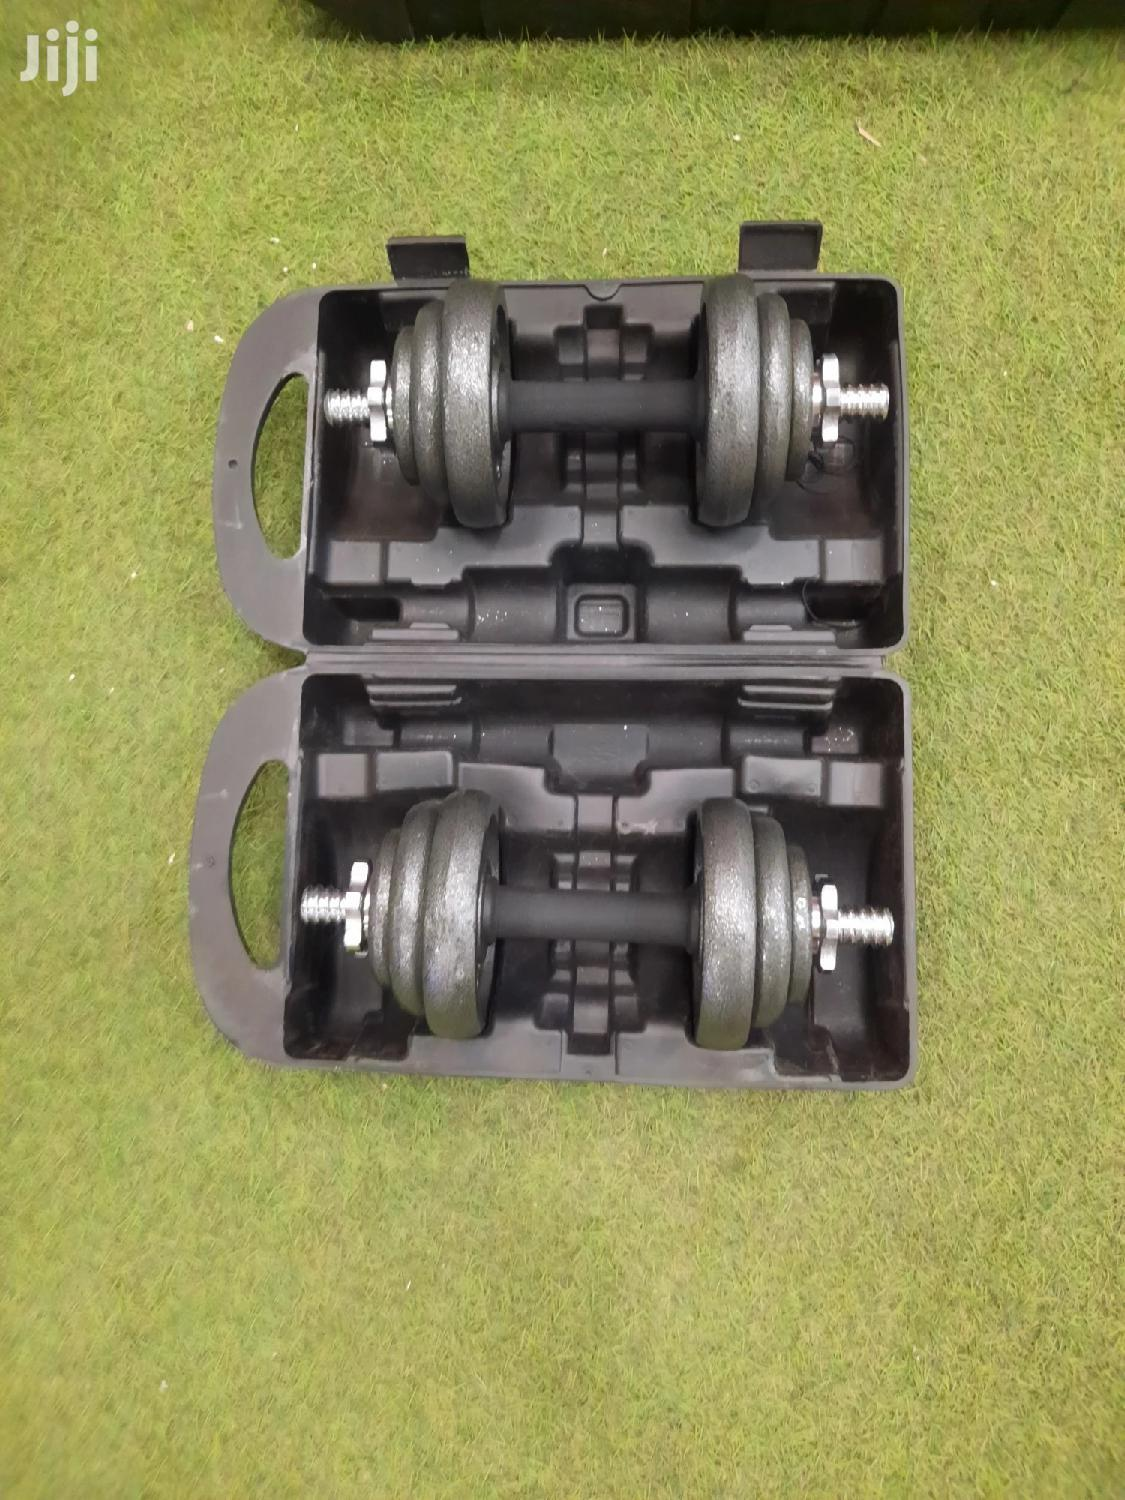 York Fitness 20Kg Dumbbells | Fitness & Personal Training Services for sale in Achimota, Greater Accra, Ghana